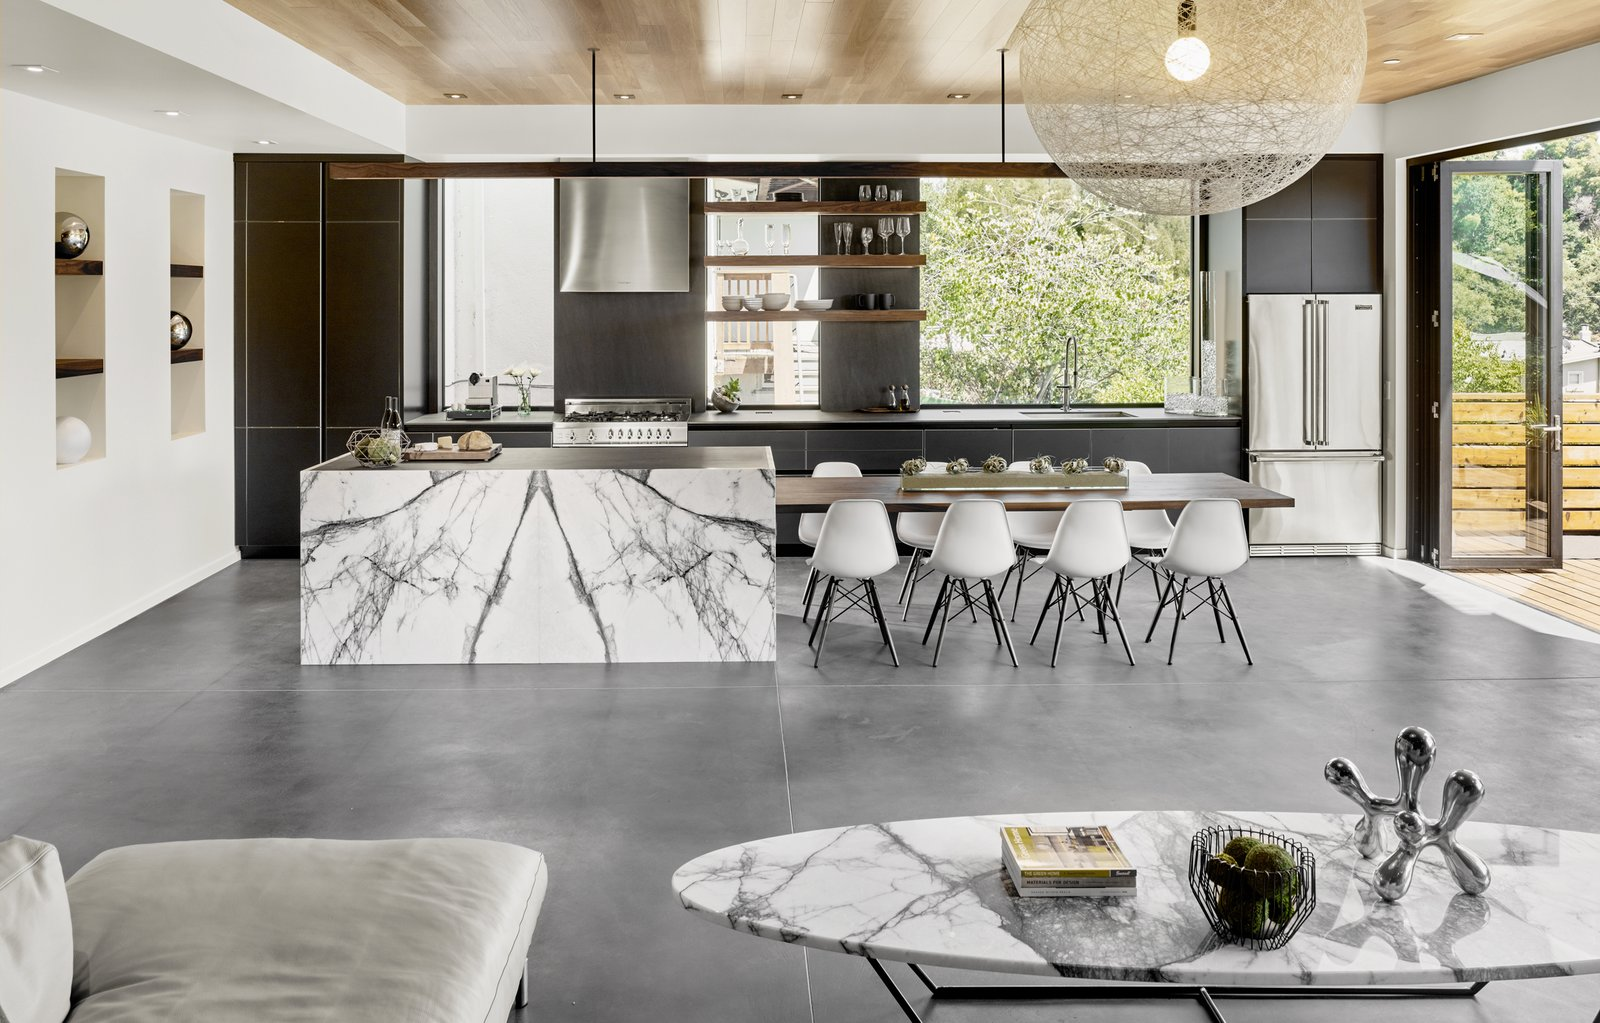 Kitchen, Range Hood, Marble Counter, and Pendant Lighting The floors have hydronic heating embedded in a matte finished concrete. The stone slab is Calacatta Viola. The table is custom designed by the architect and fabricated by Gerardo Villa.  Trestle Glen Modern by Knock Architecture + Design